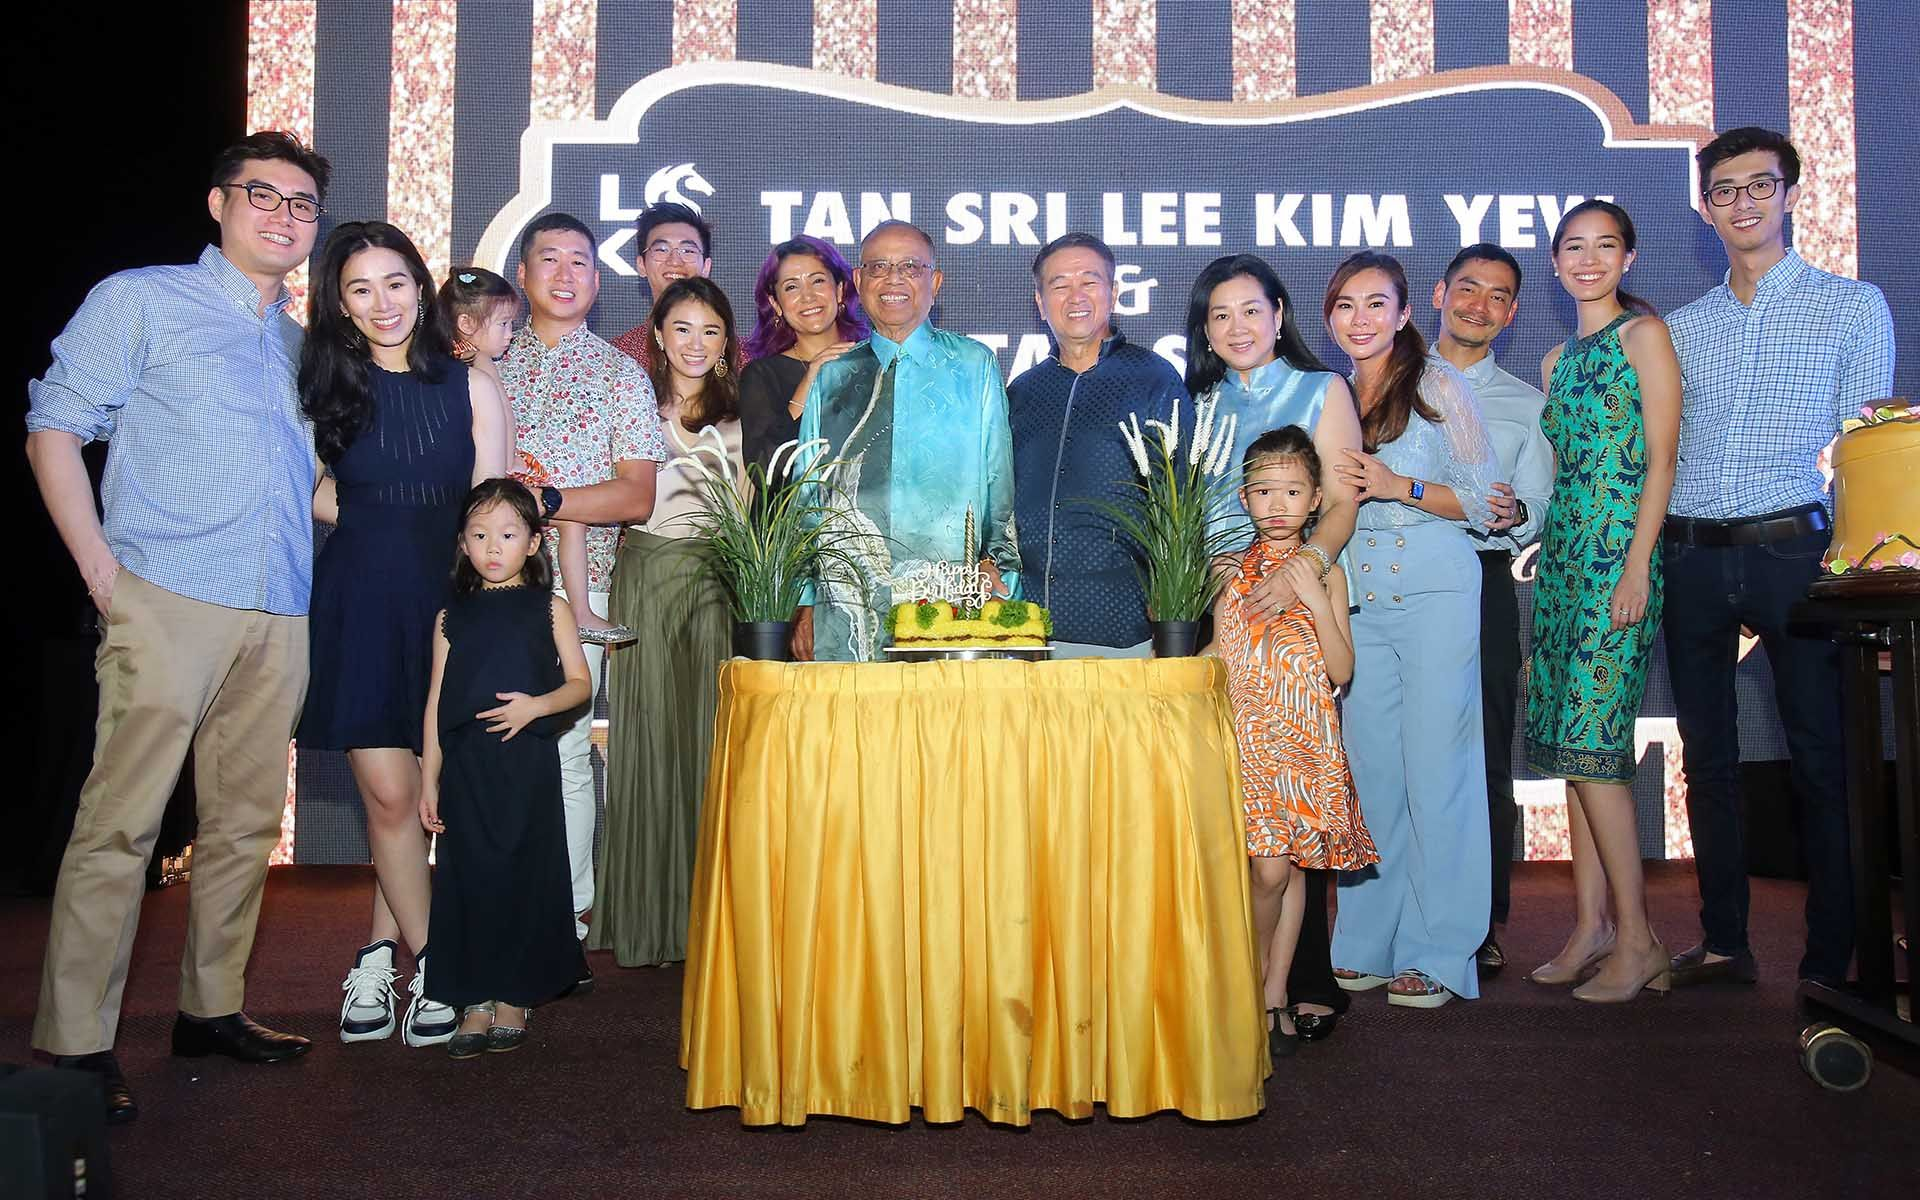 Tan Sri Lee Kim Yew's 64th Garden Birthday Party